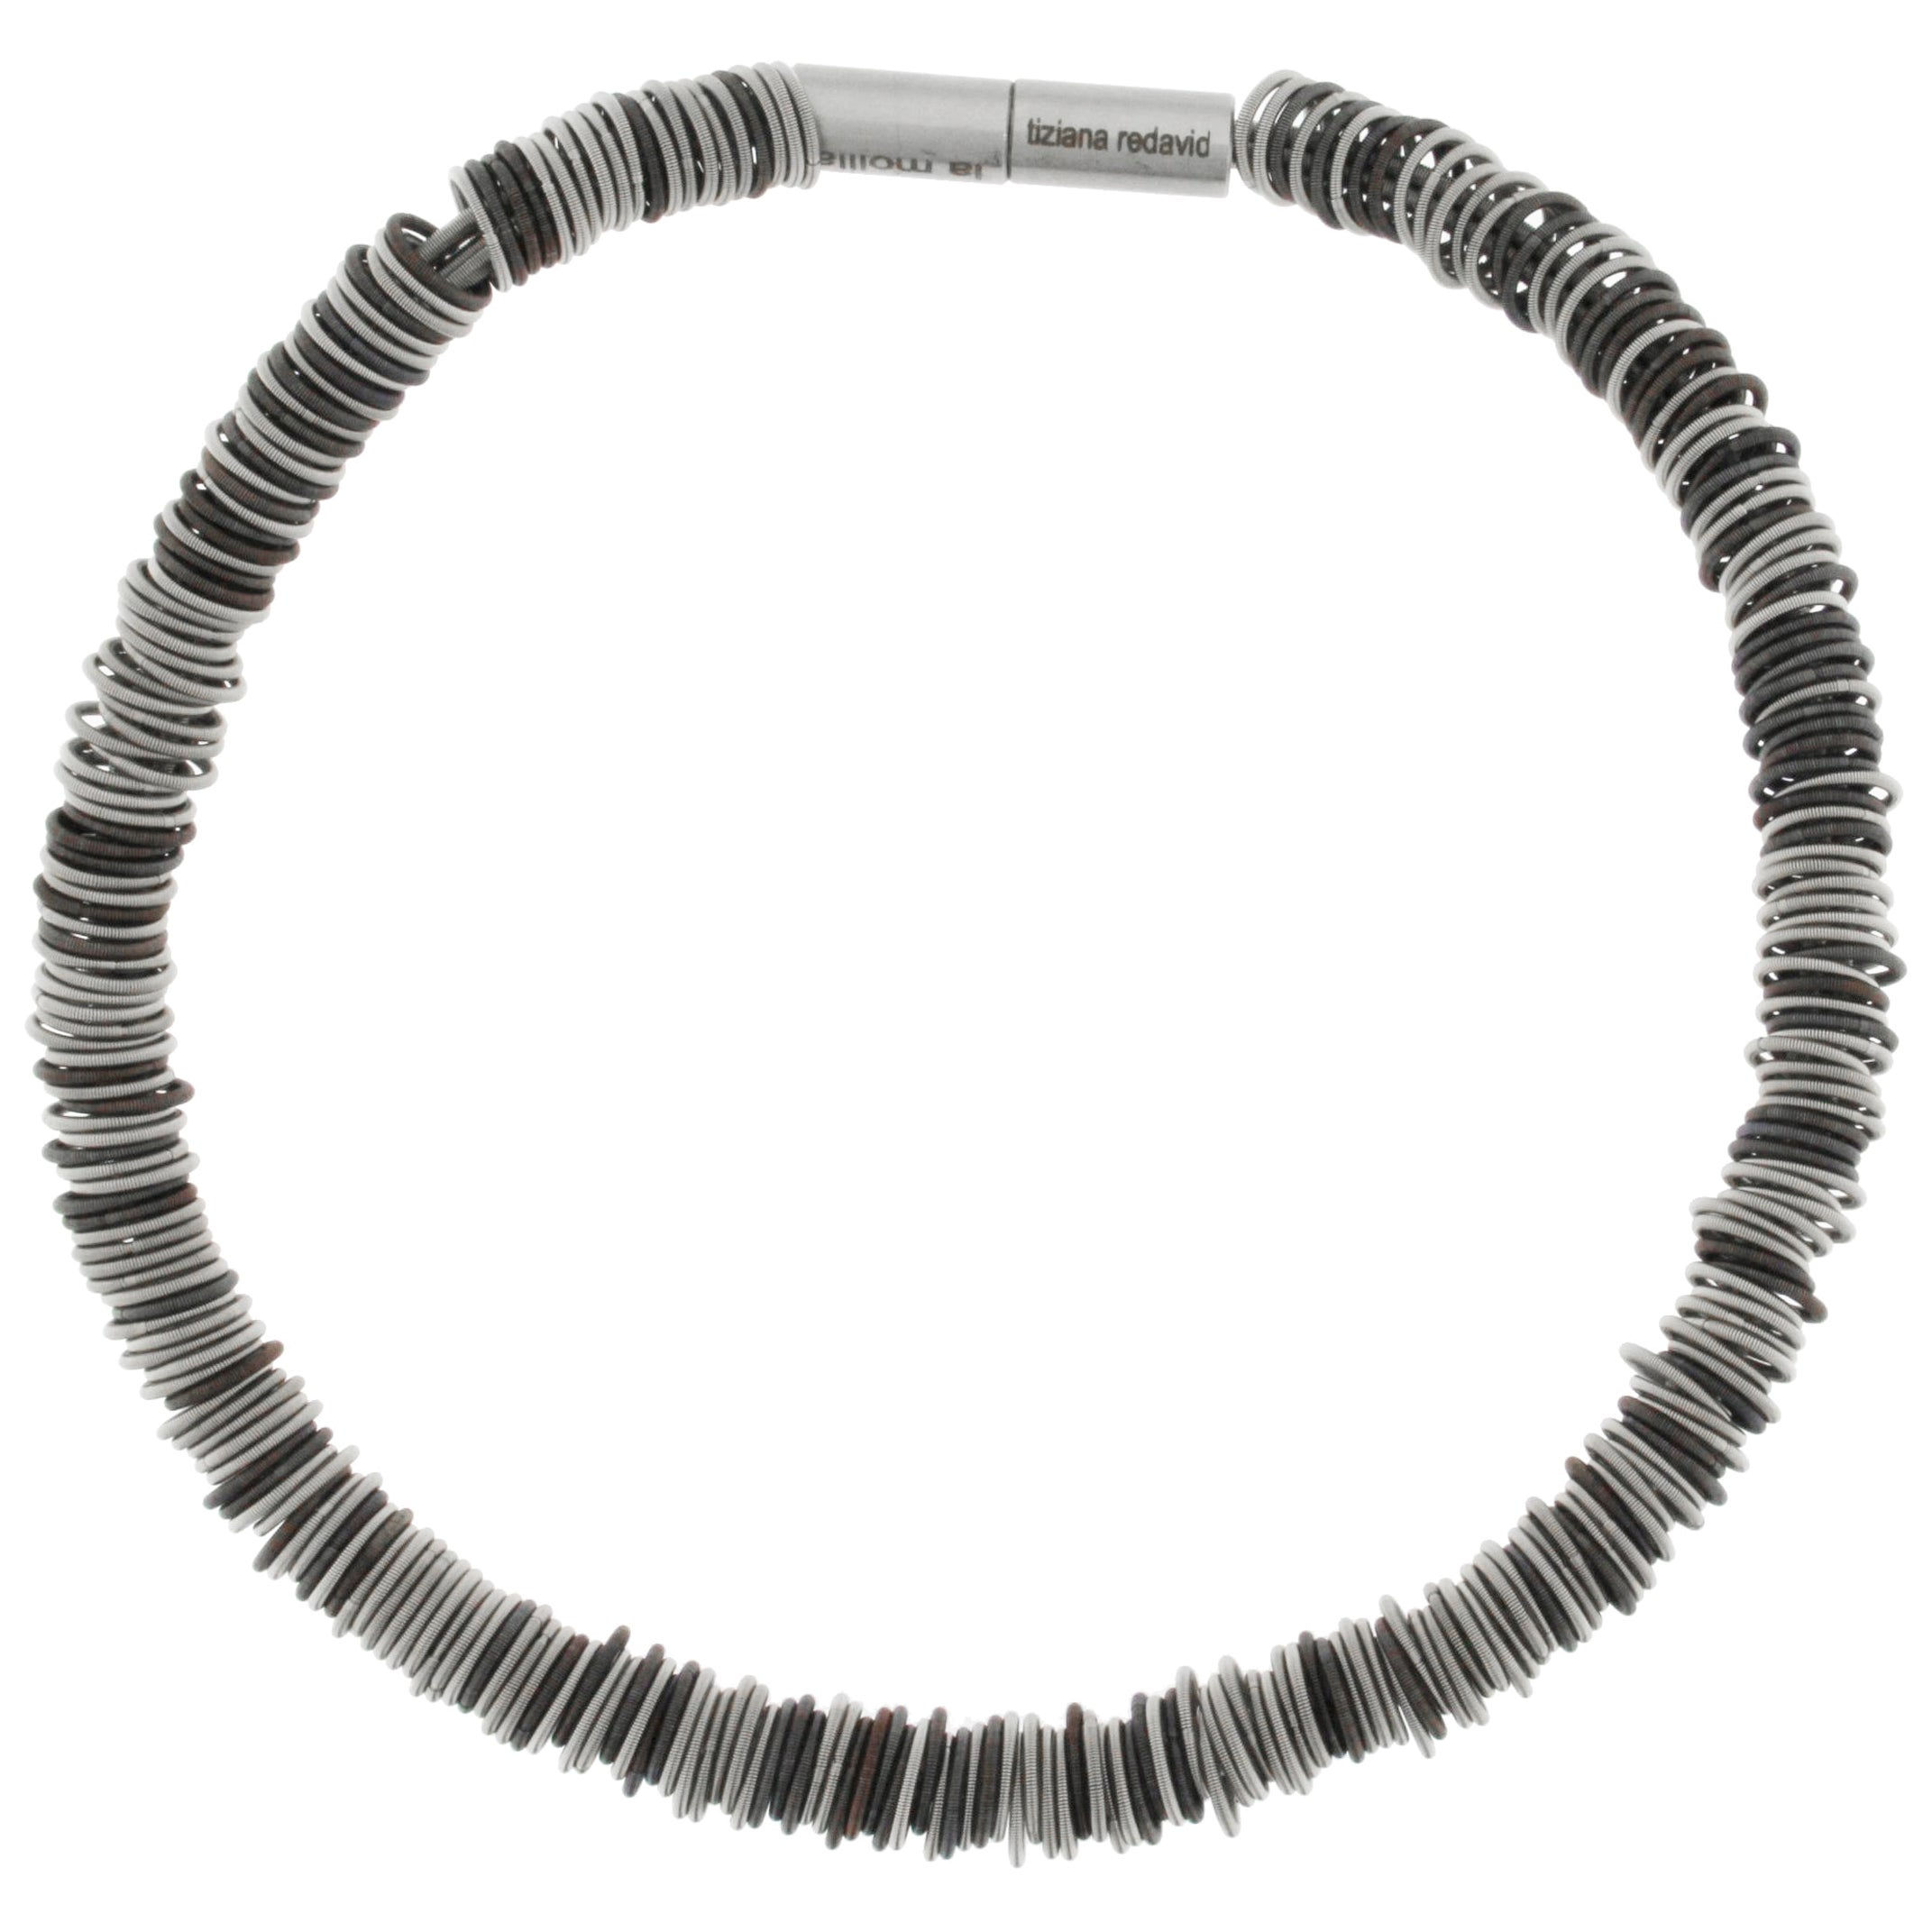 Tiziana N1 Stainless Steel Spring Choker Necklace